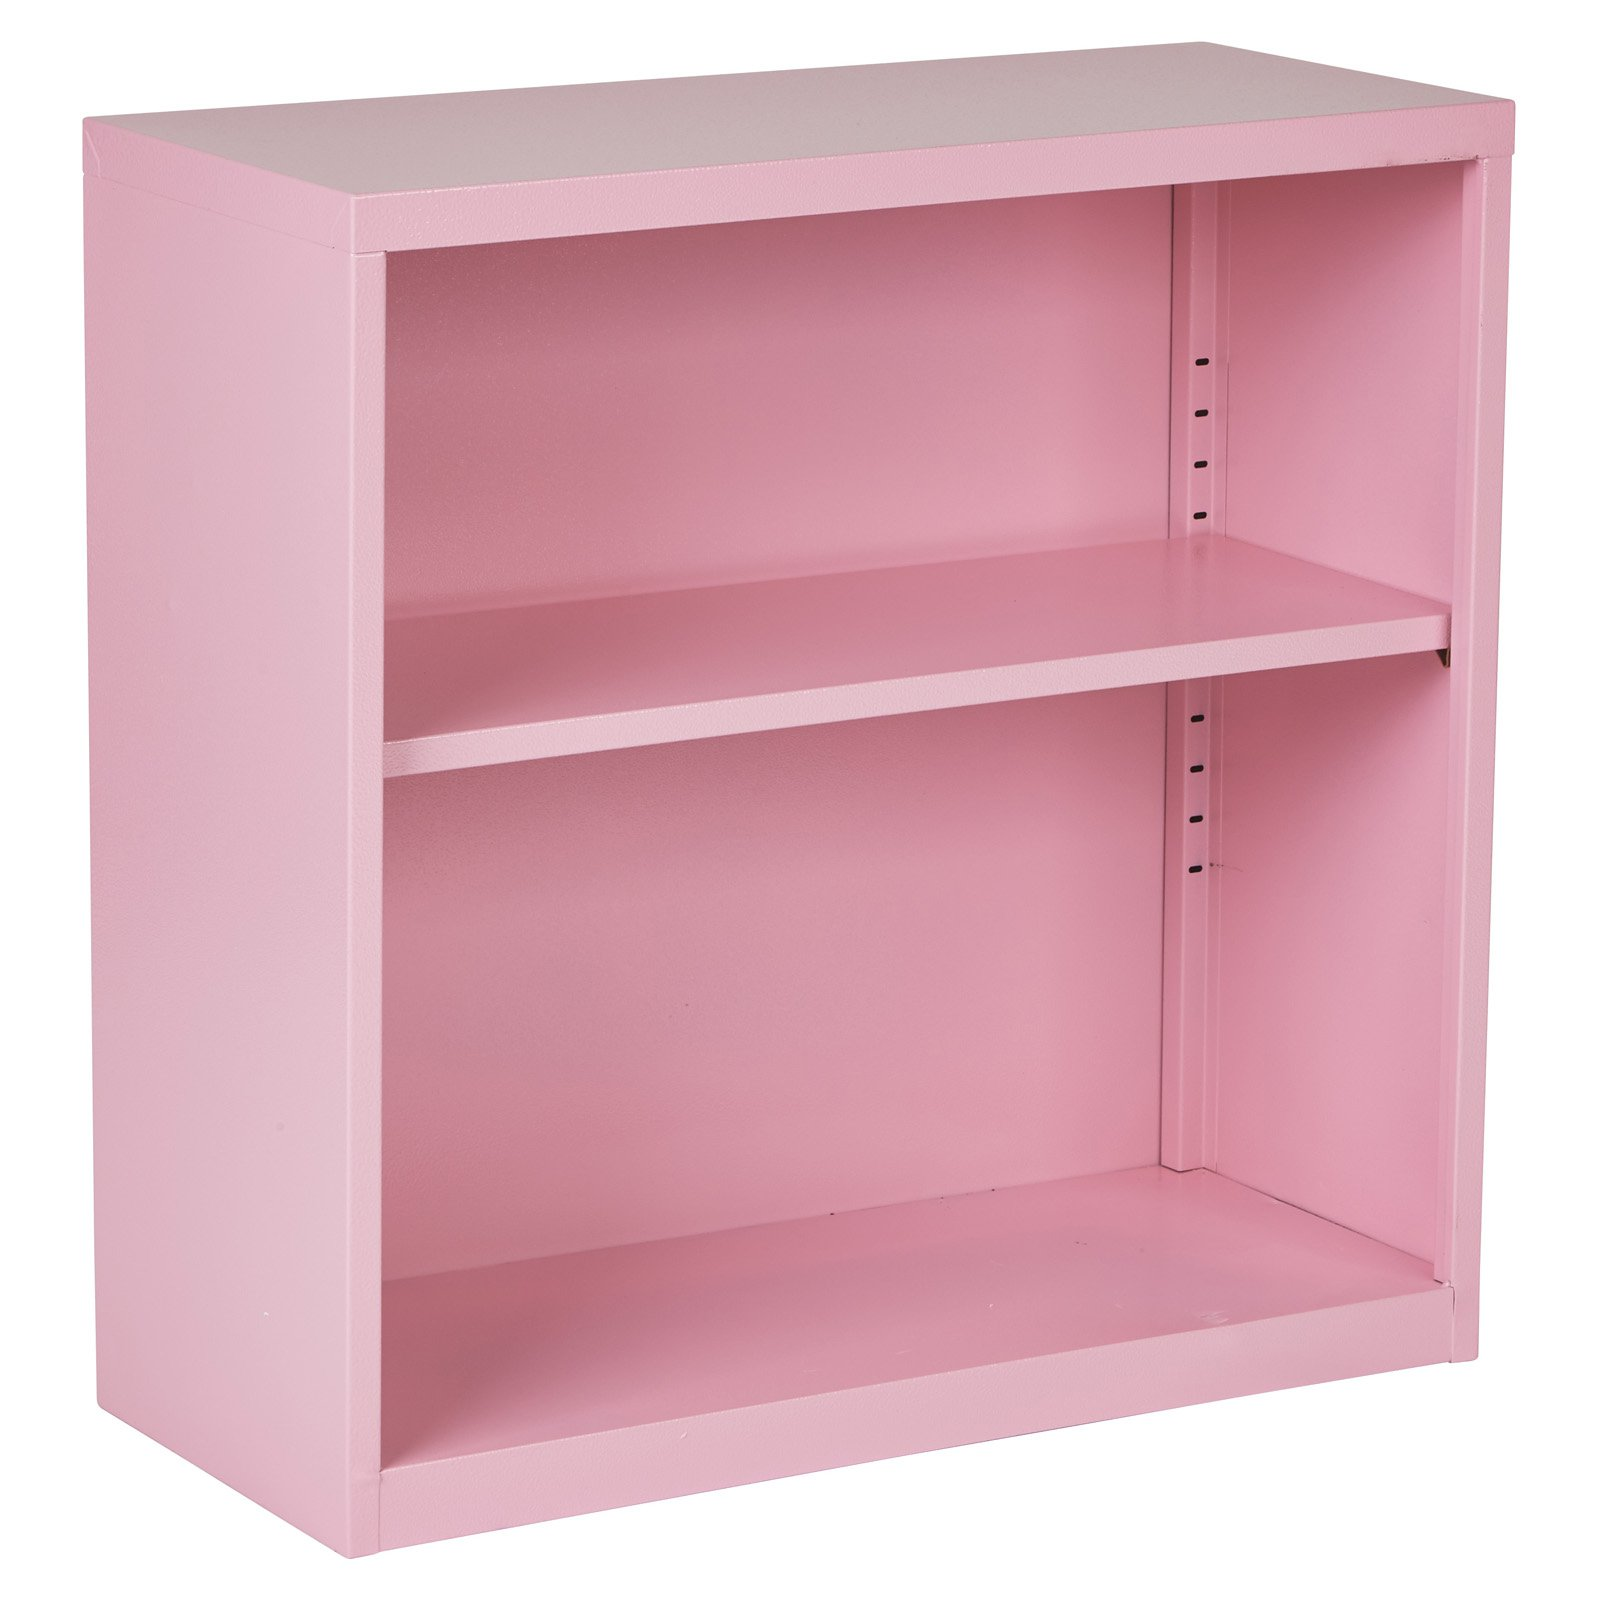 Metal Bookcase - Multiple Colors